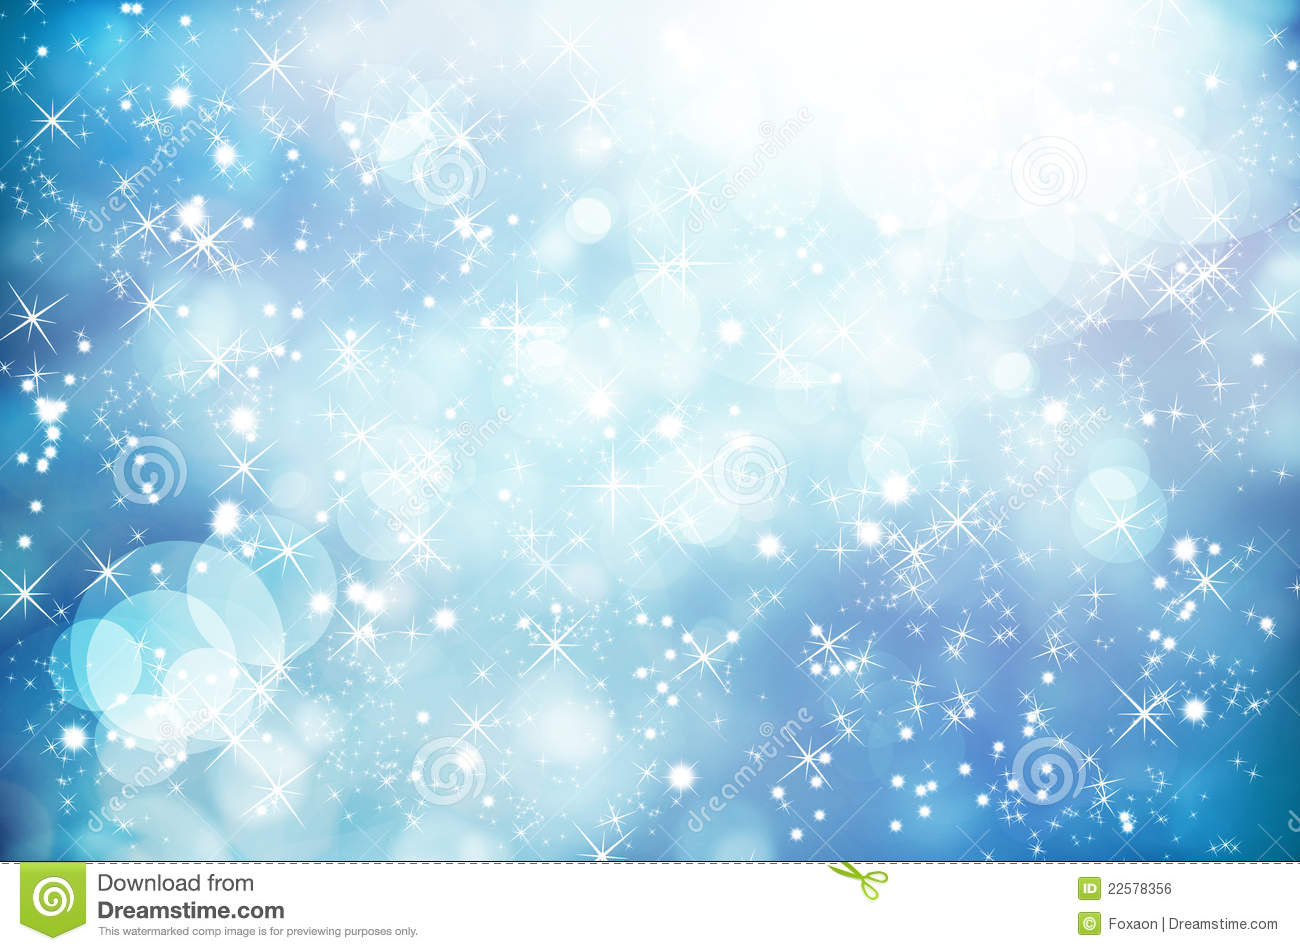 abstract winter background free - photo #9